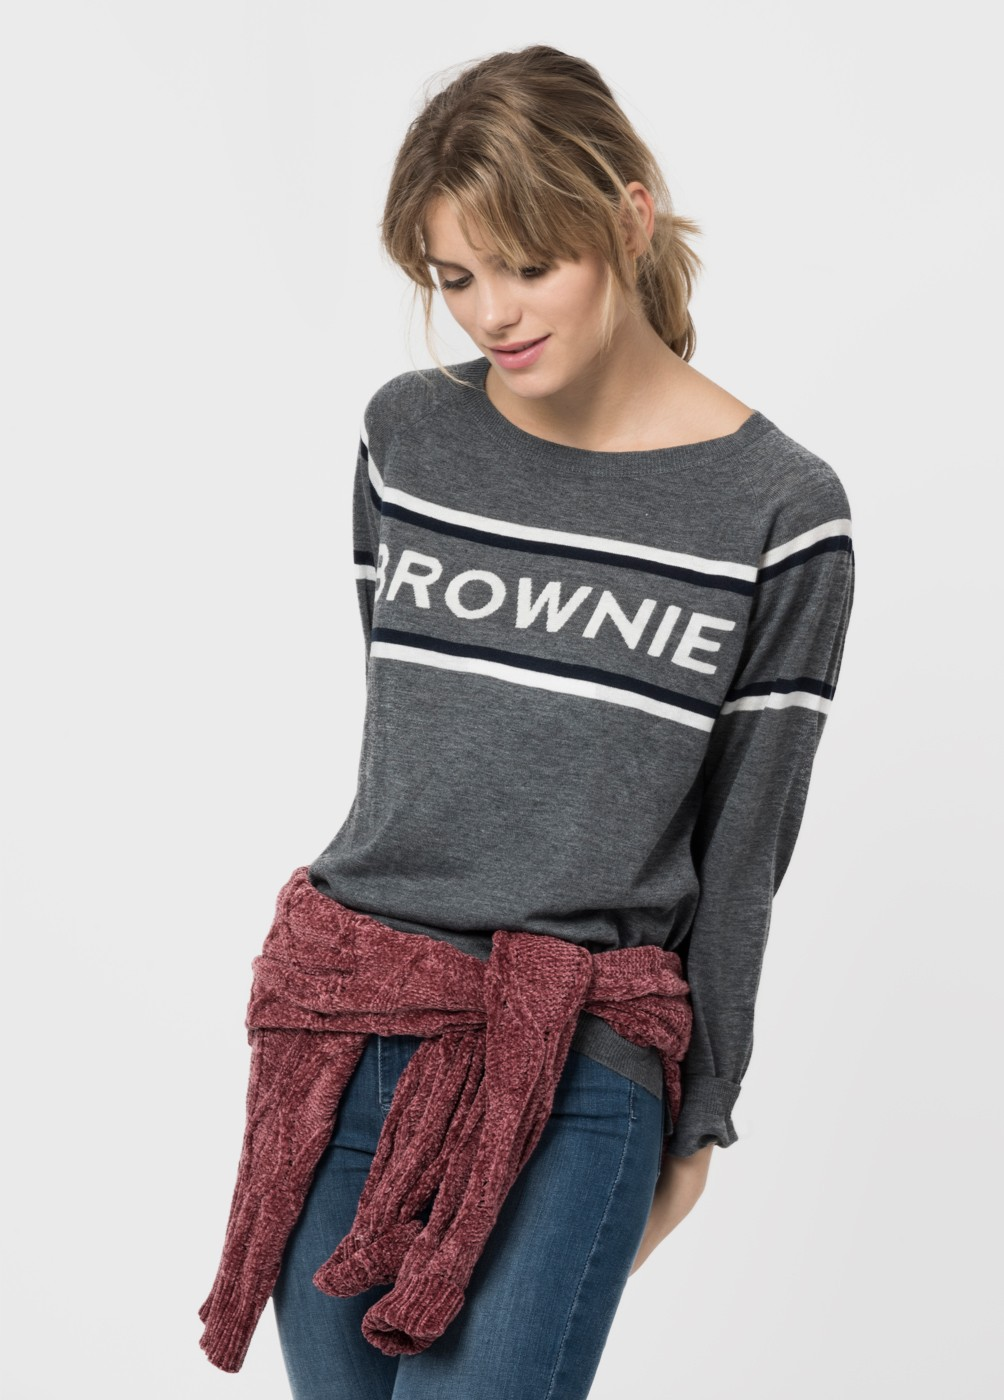 BROWNIE POSITIONAL PRINT SWEATER